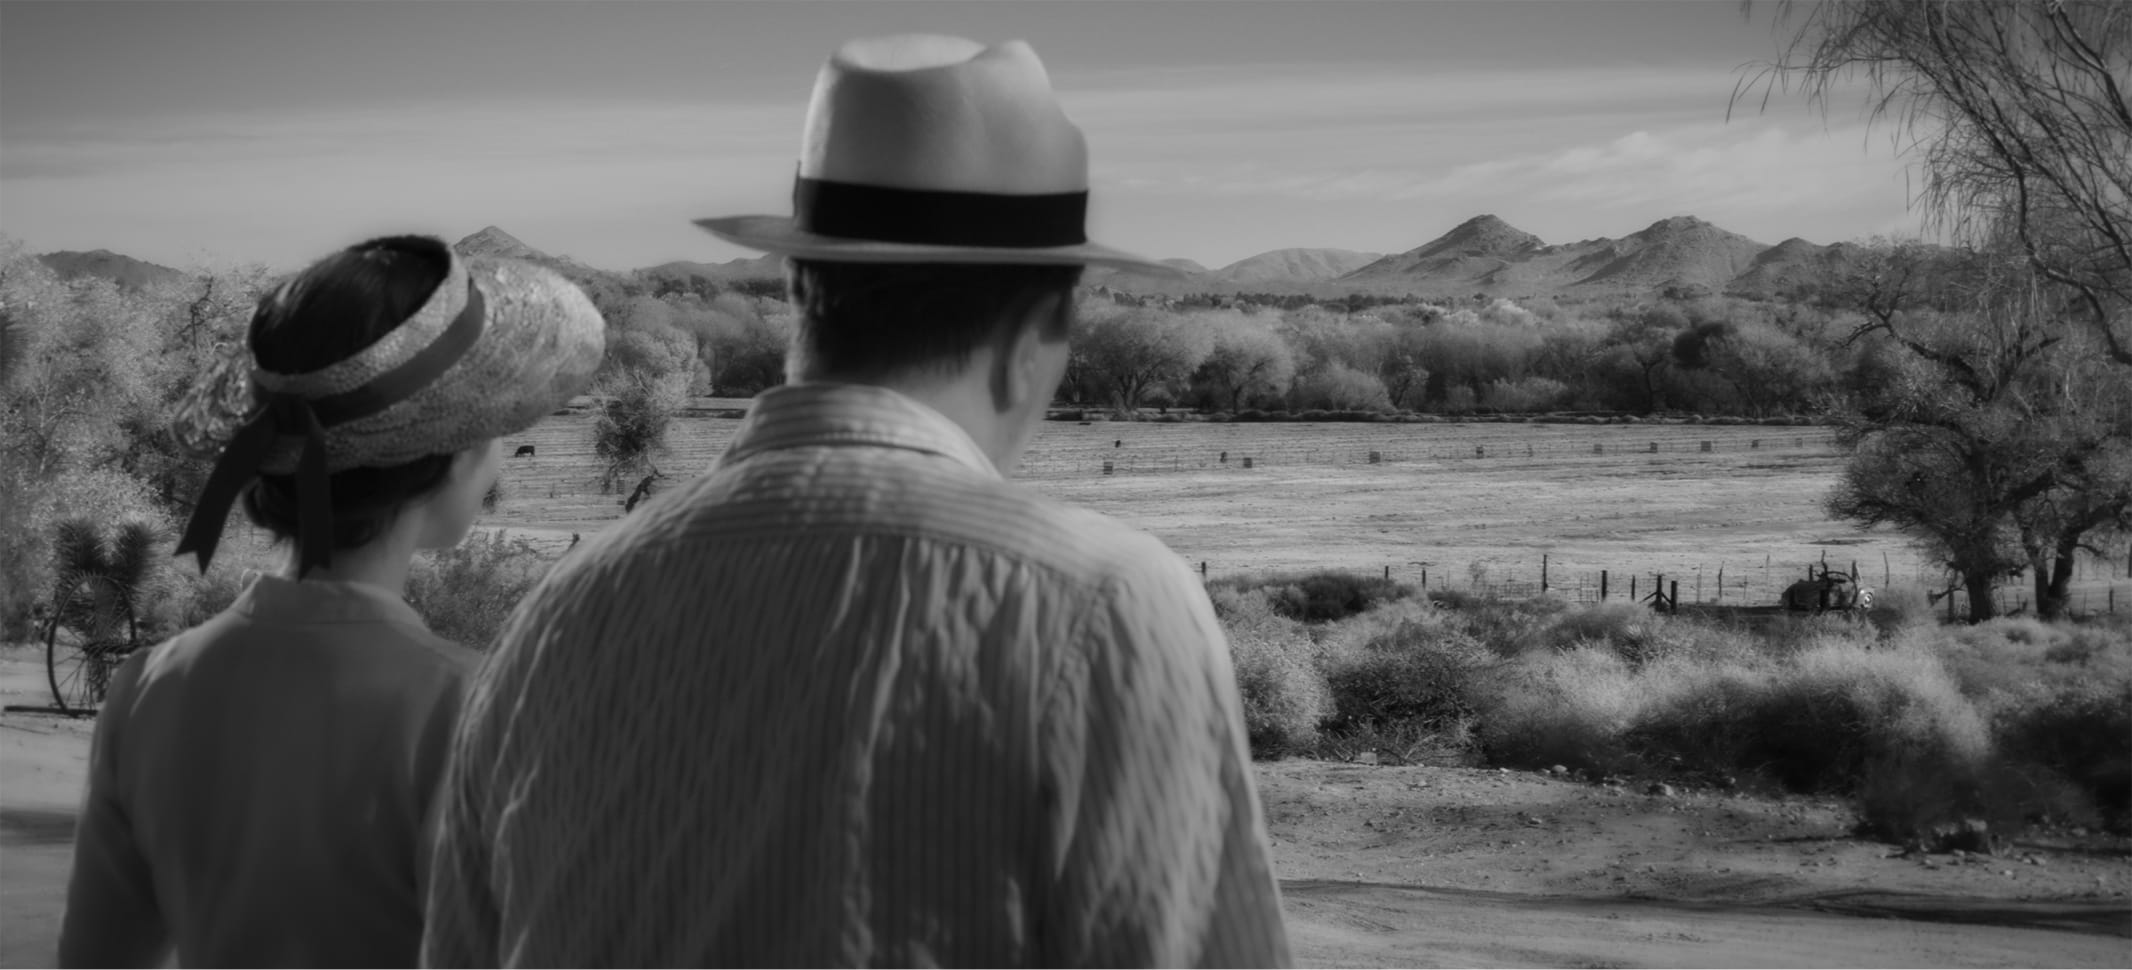 In a shot from the film, we see how the scene above translates to a black-and-white experience. The tones from Collins's blouse and hat match the desert landscape in front of her. The textures of the drying foliage are soft.